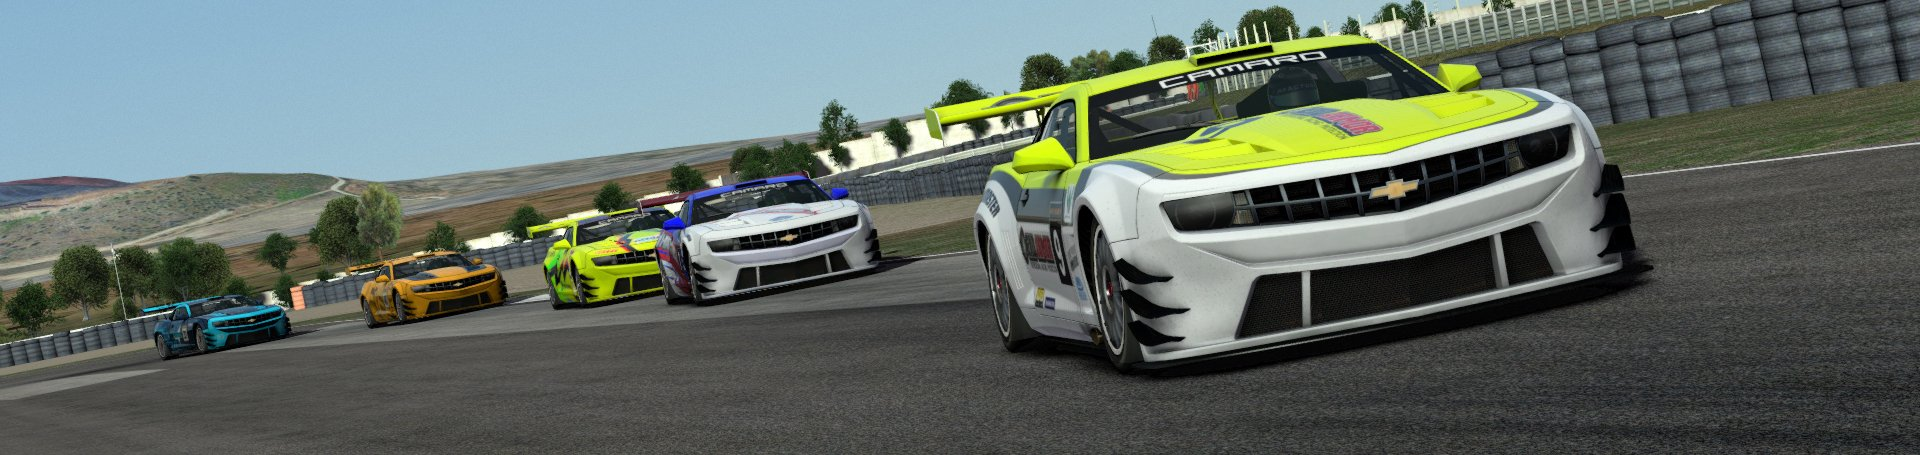 Rfactor 2 No Controller Detected